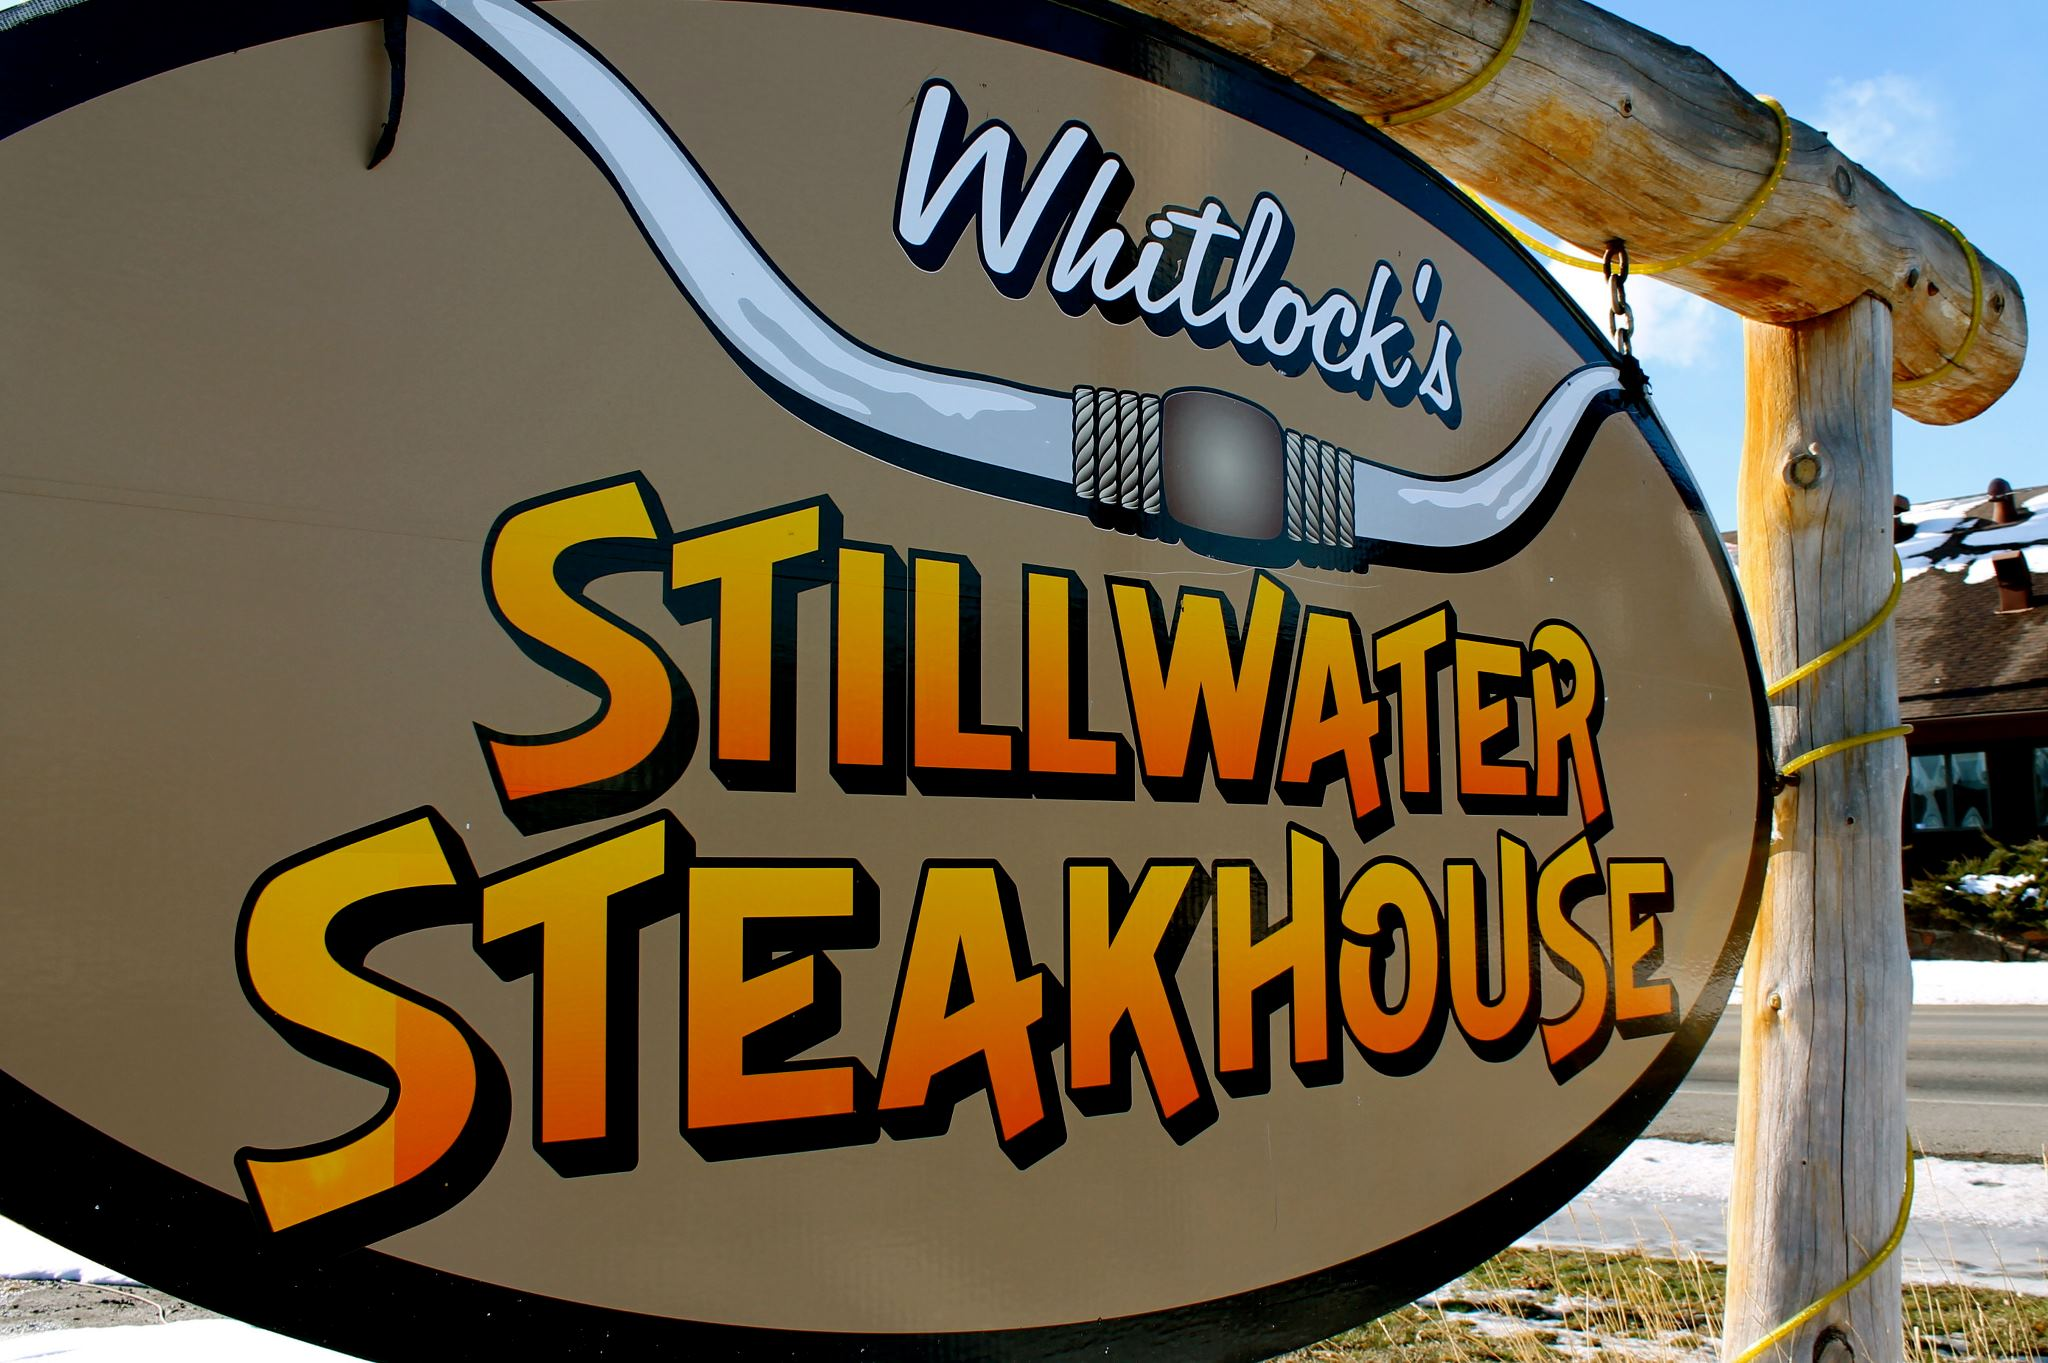 Whitlocks's Stillwater Steak House